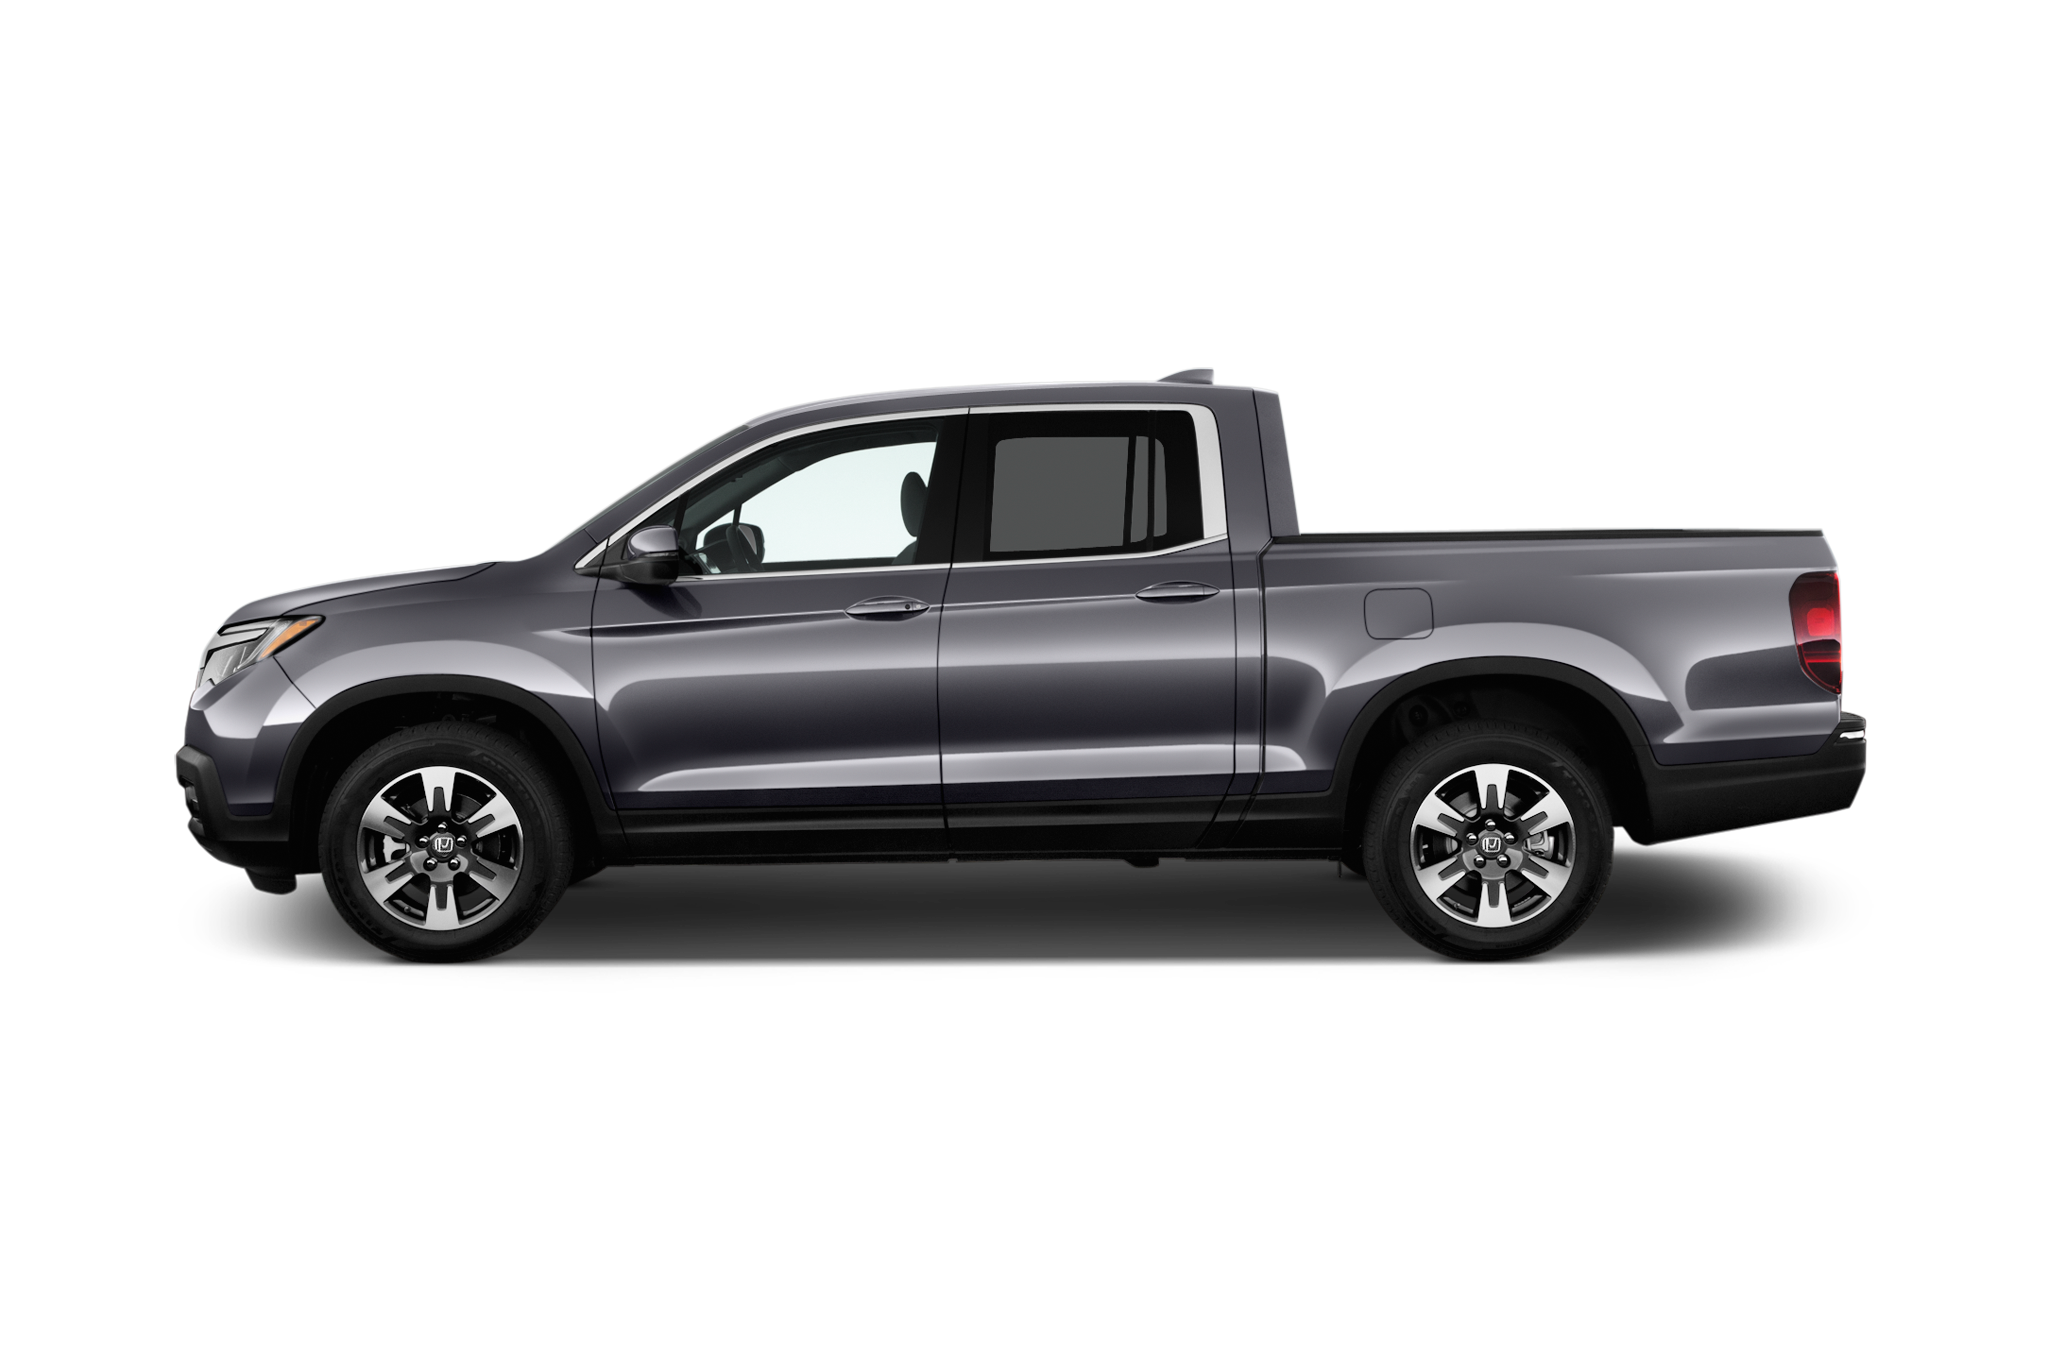 2017 Honda Ridgeline Shows Off Its Truck Bed Toughness Once Again | Automobile Magazine